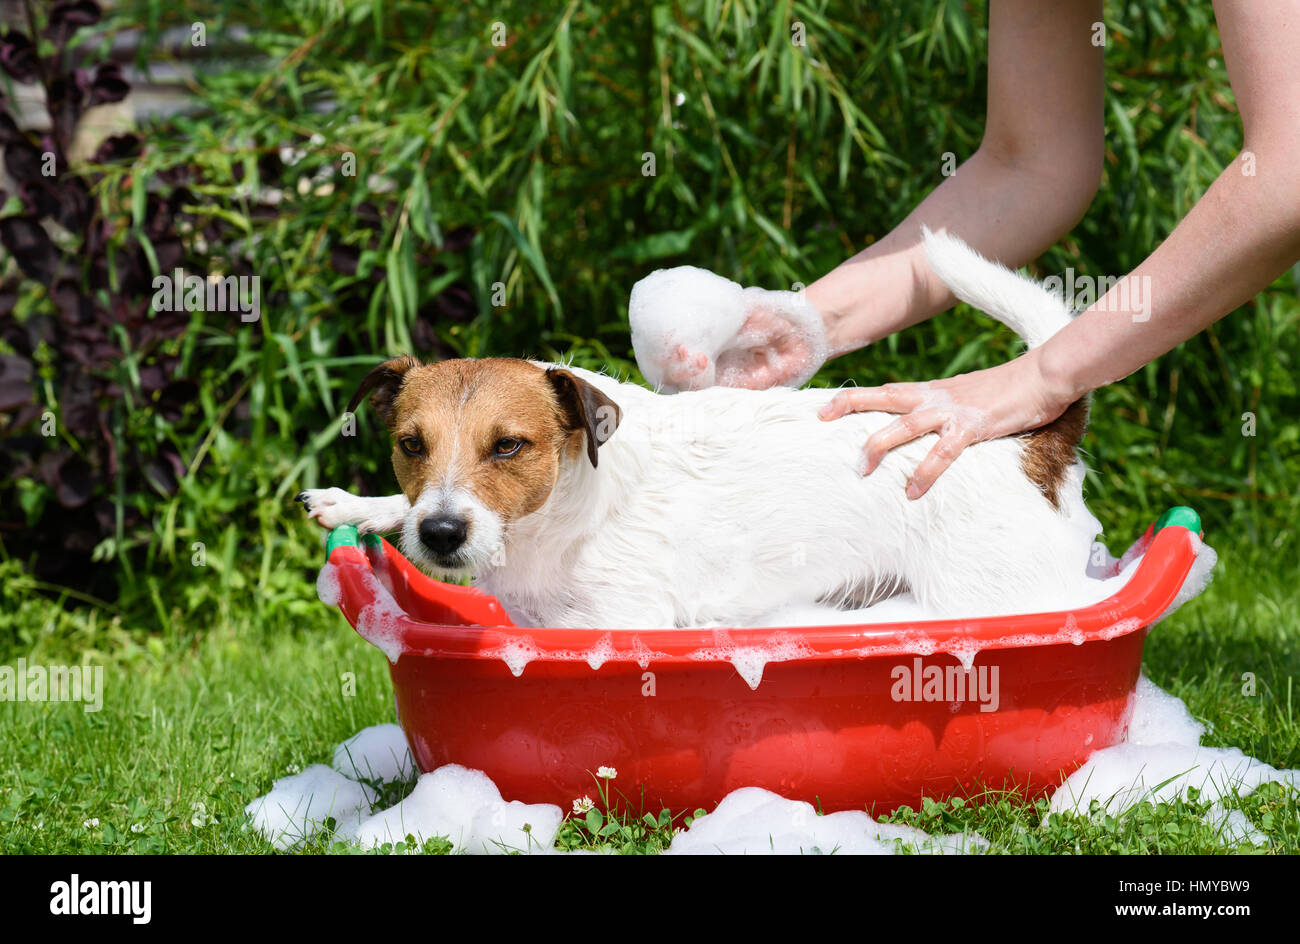 Dog takes bath with shampoo at hot summer day - Stock Image